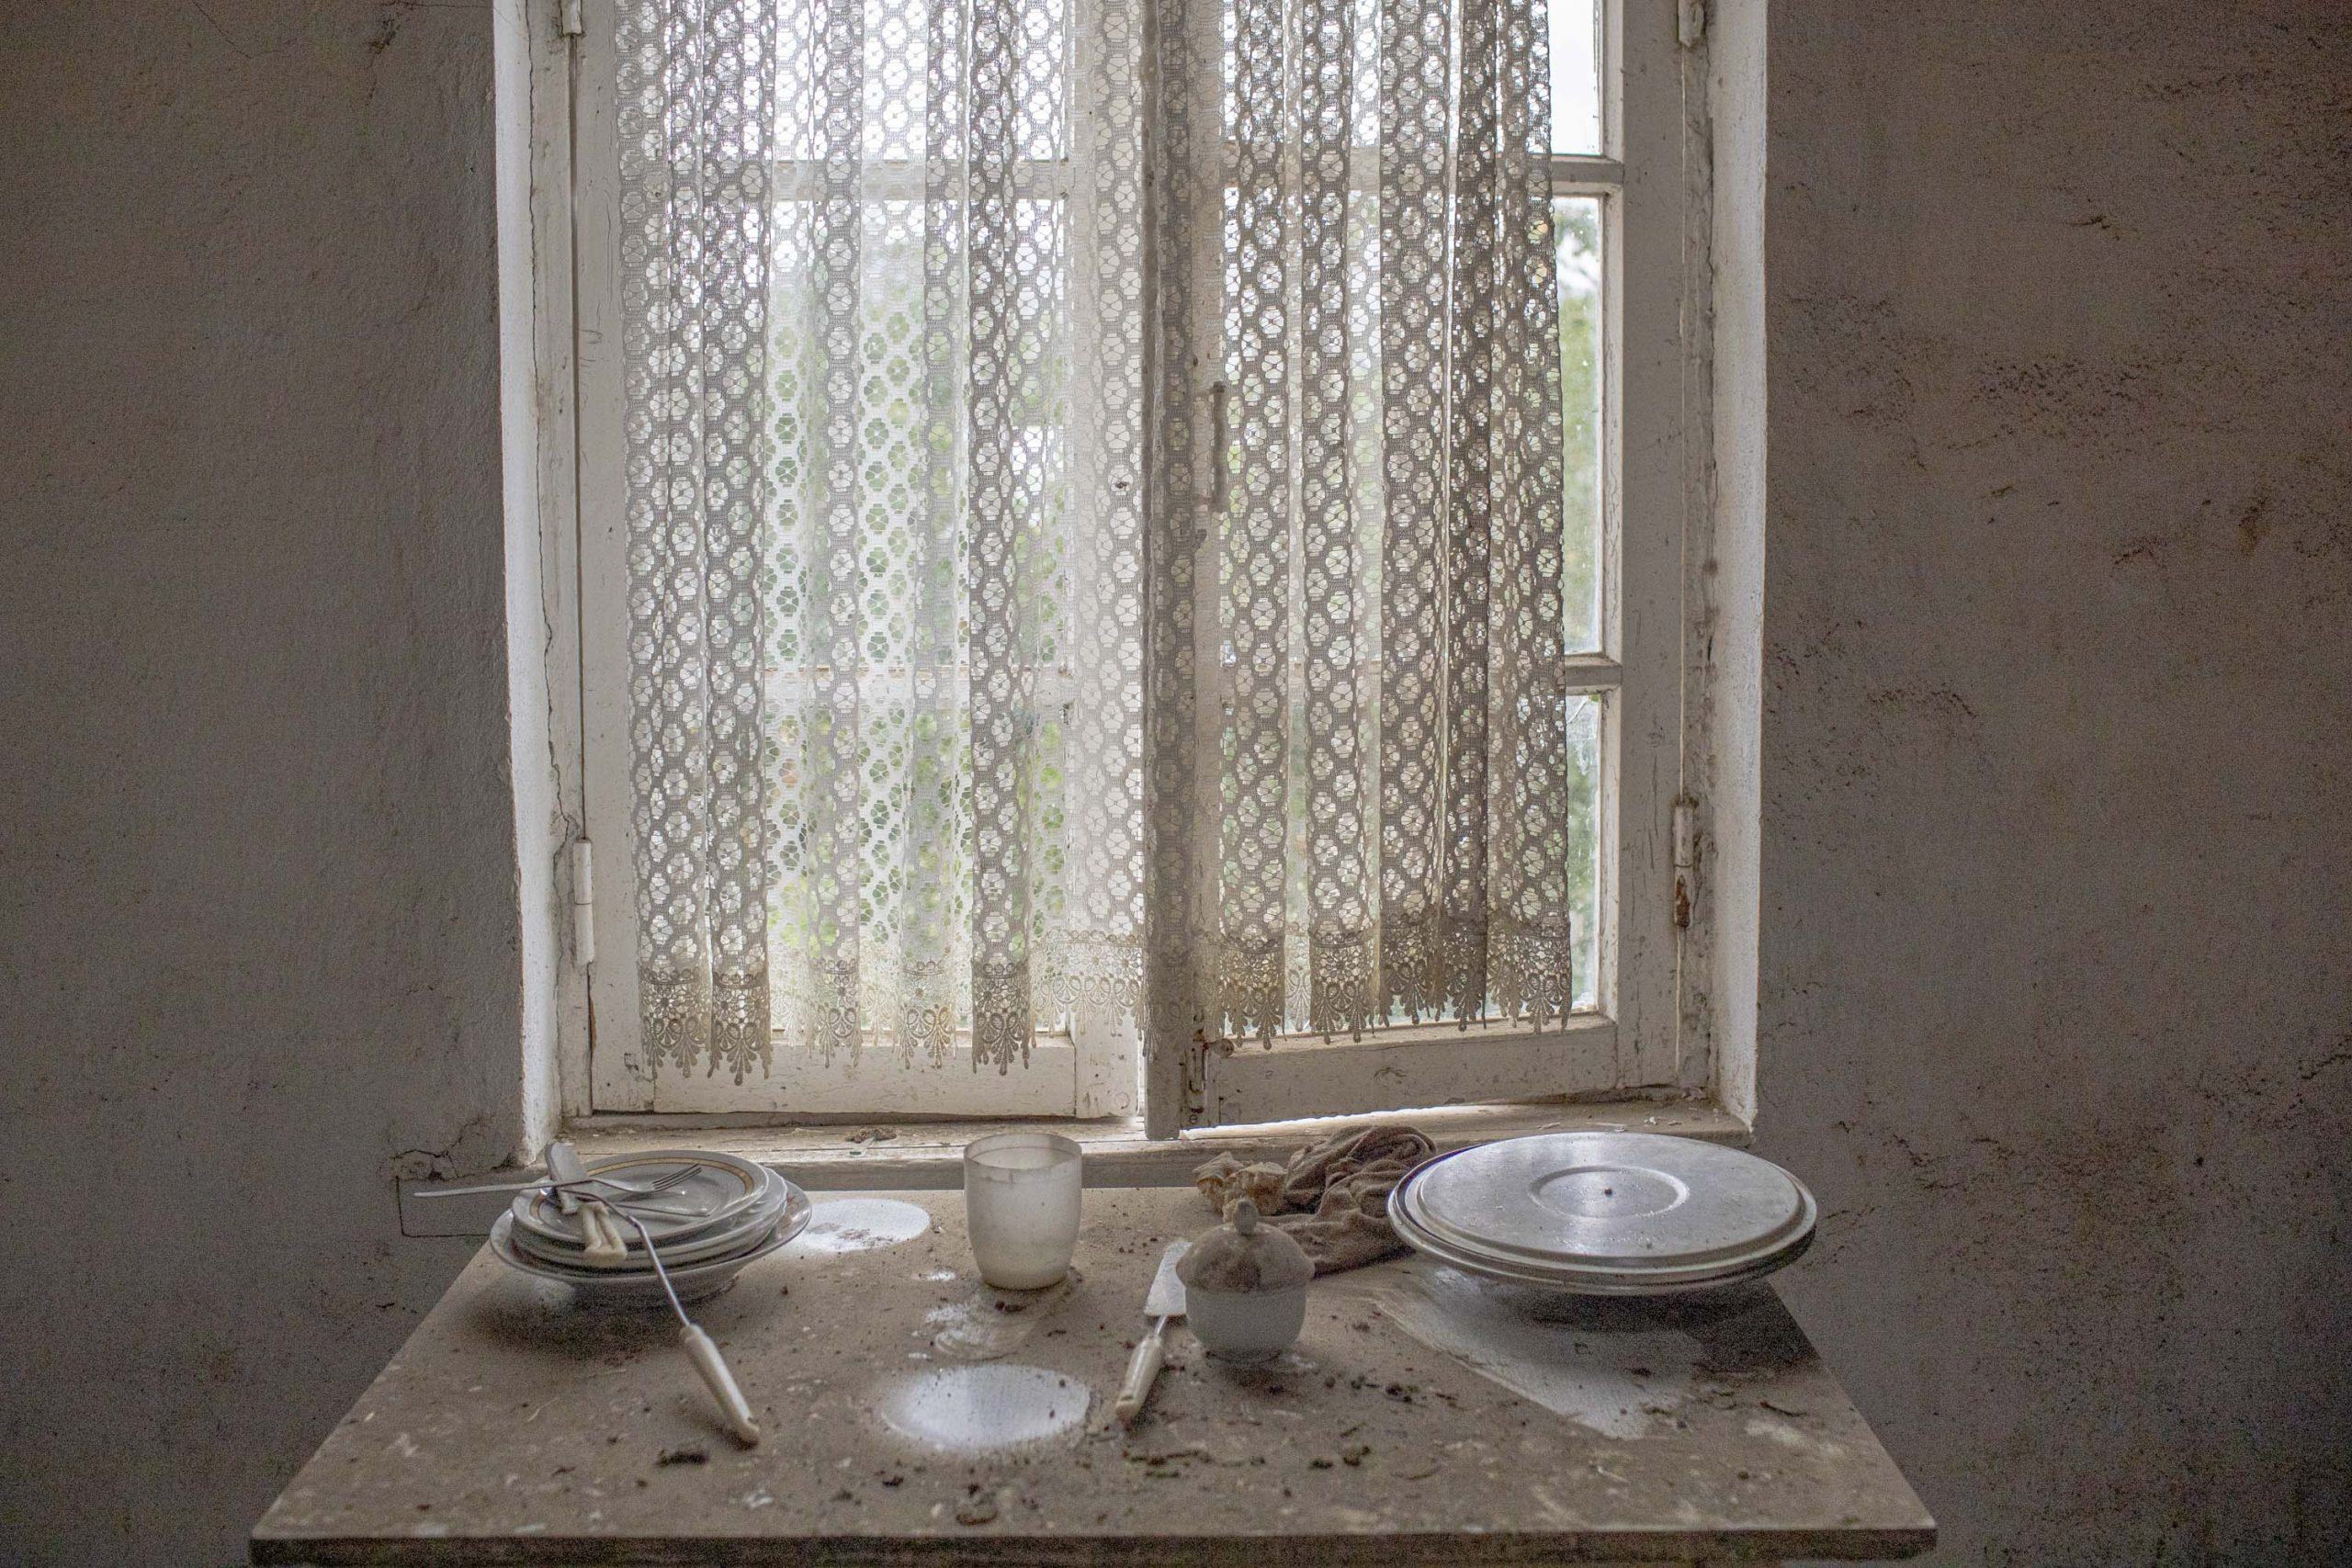 Kitchen in a house that was hit in Martuni, Nagorno-Karabakh, seen on October 1, 2020. The house was hit on September 27.